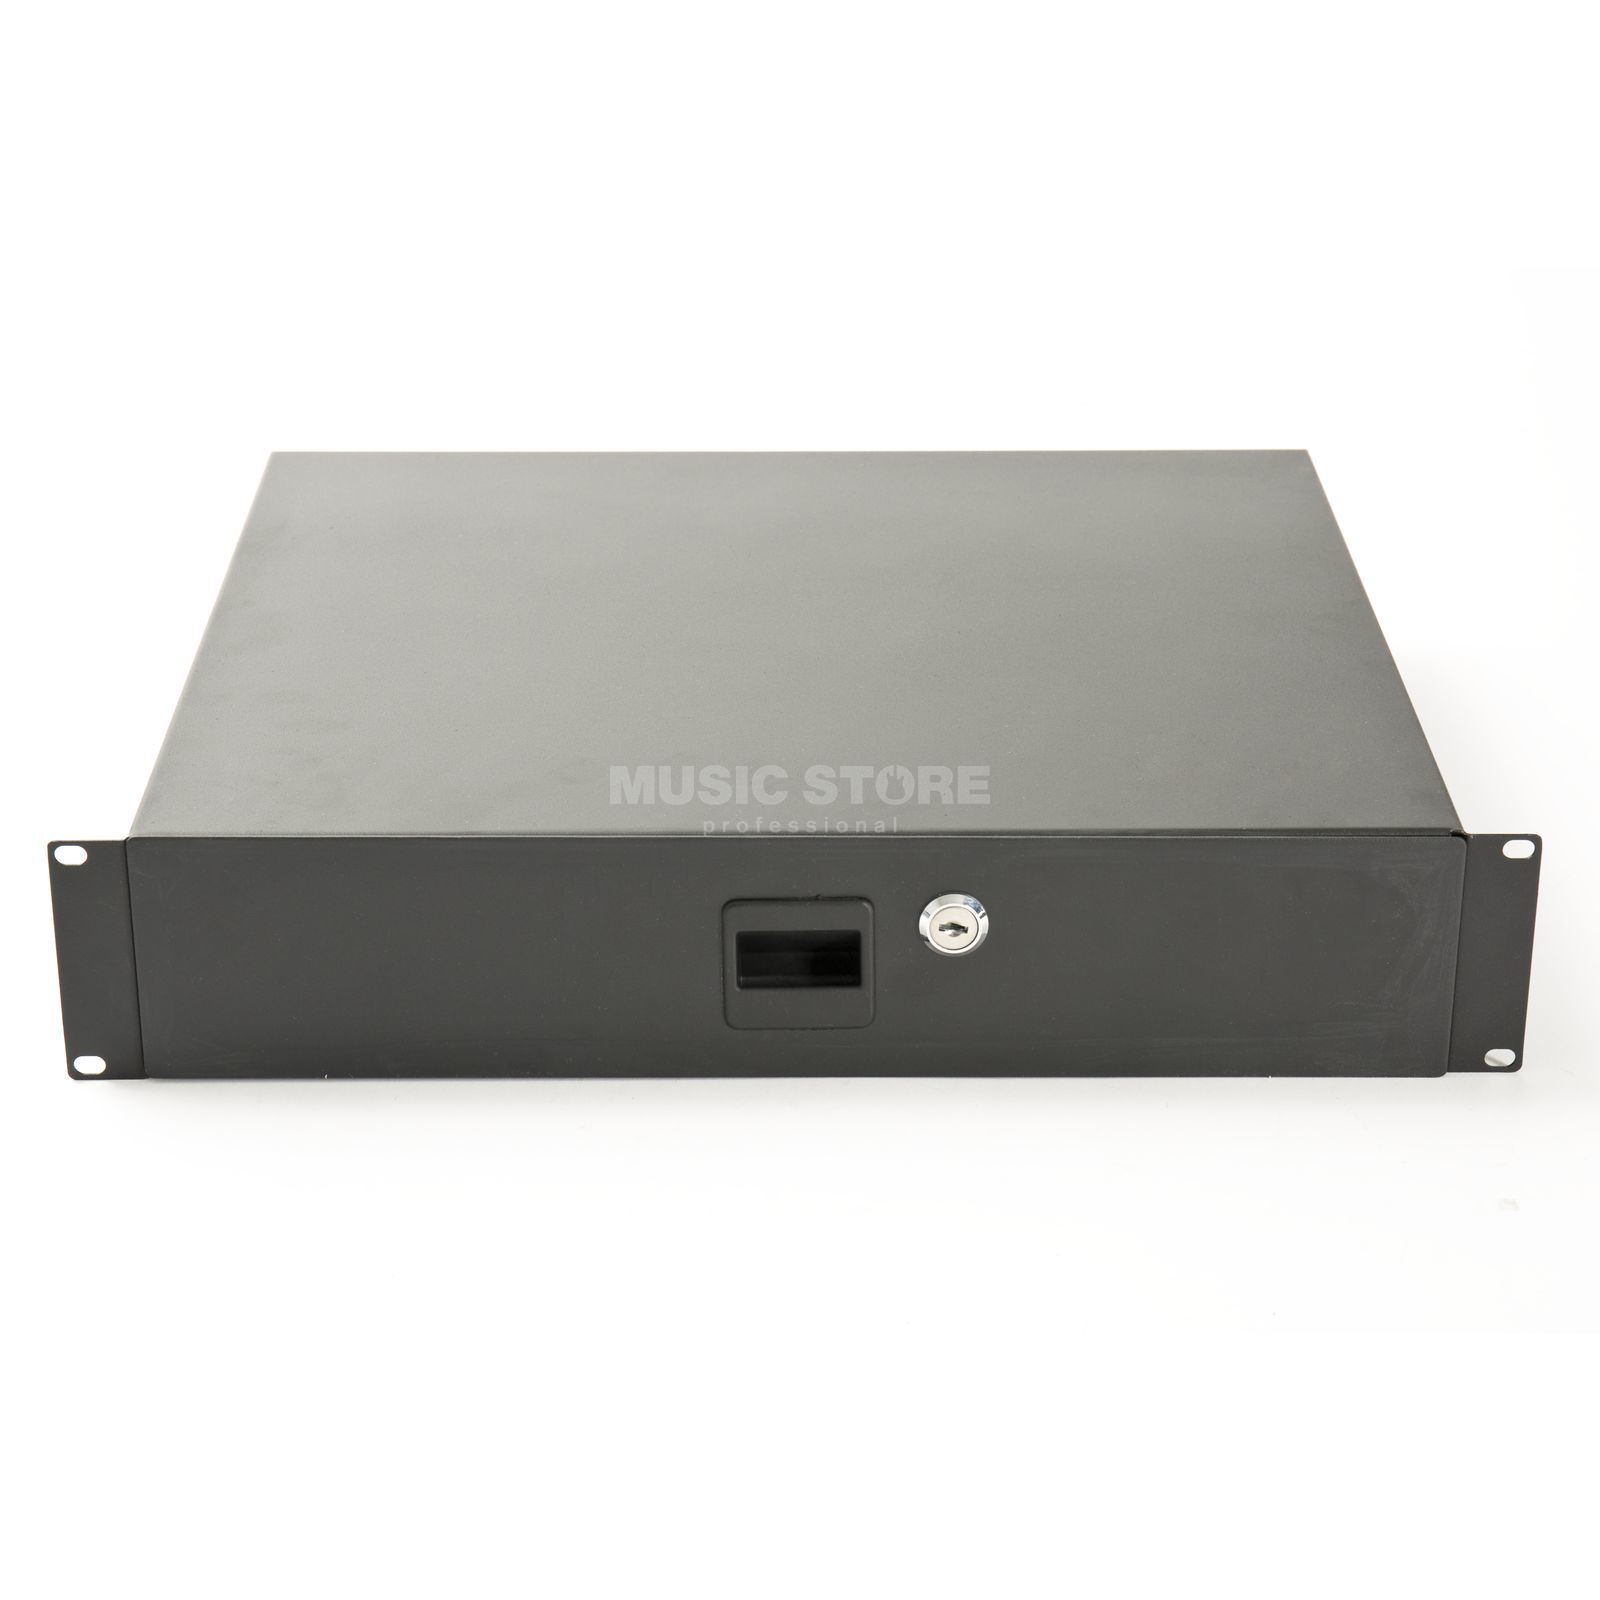 "MUSIC STORE 19"" Rack Drawer 2U lockable Zdjęcie produktu"